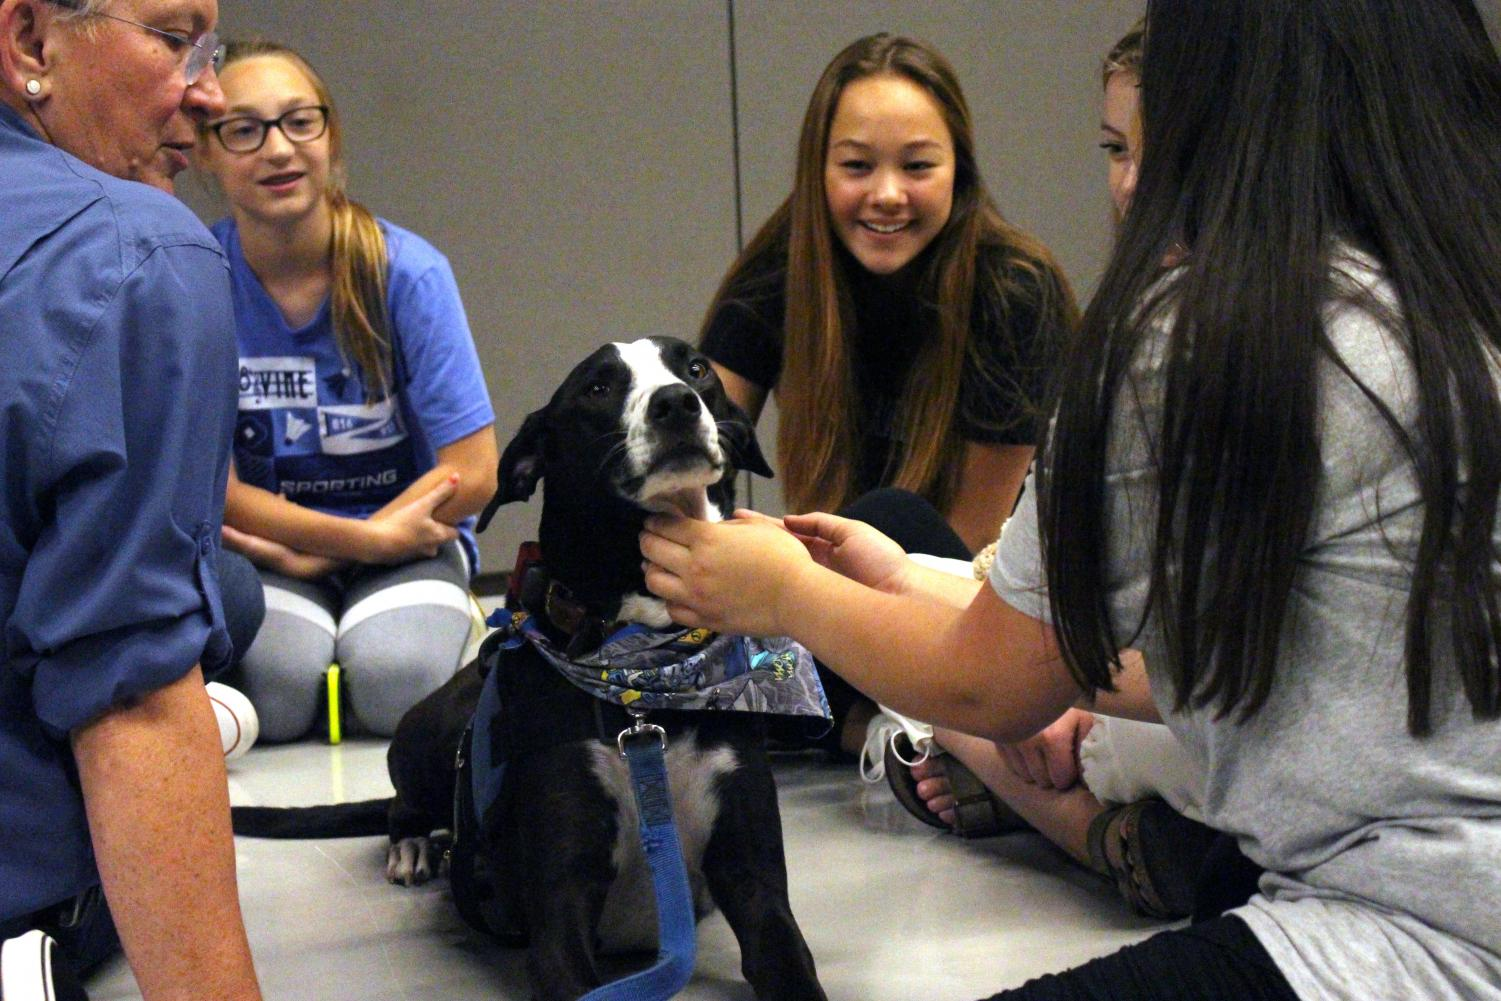 Therapy dog Murphy also was included in the Power 50 session.